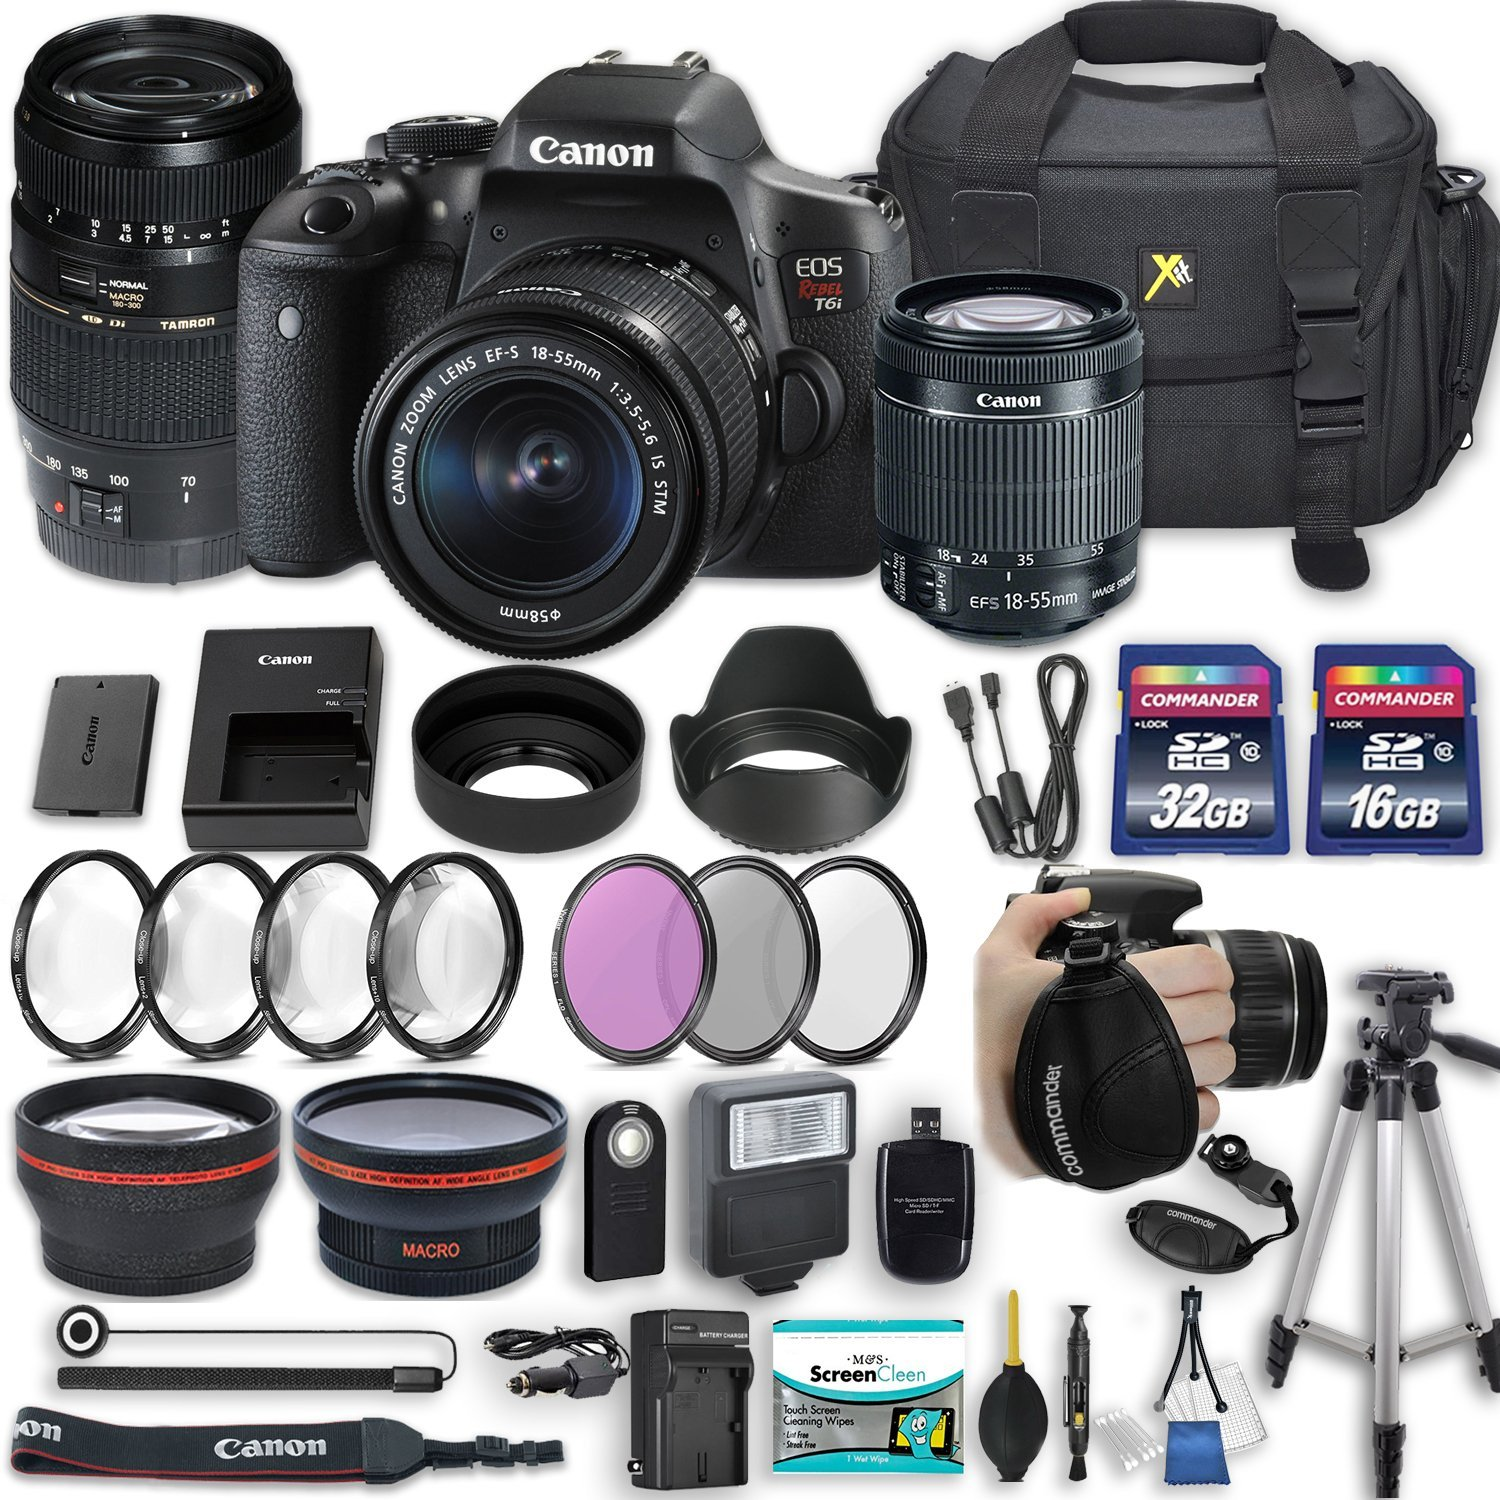 "Canon EOS Rebel T6i 24.2 MP DSLR Camera with Canon EF-S 18-55mm f/3.5-5.6 IS STM Lens + Tamron 70-300mm f/4-5.6 Di LD Lens + 2 Memory Cards + 2 Aux Lenses + 50"" Tripod + Accessories Bundle (24 Items)"